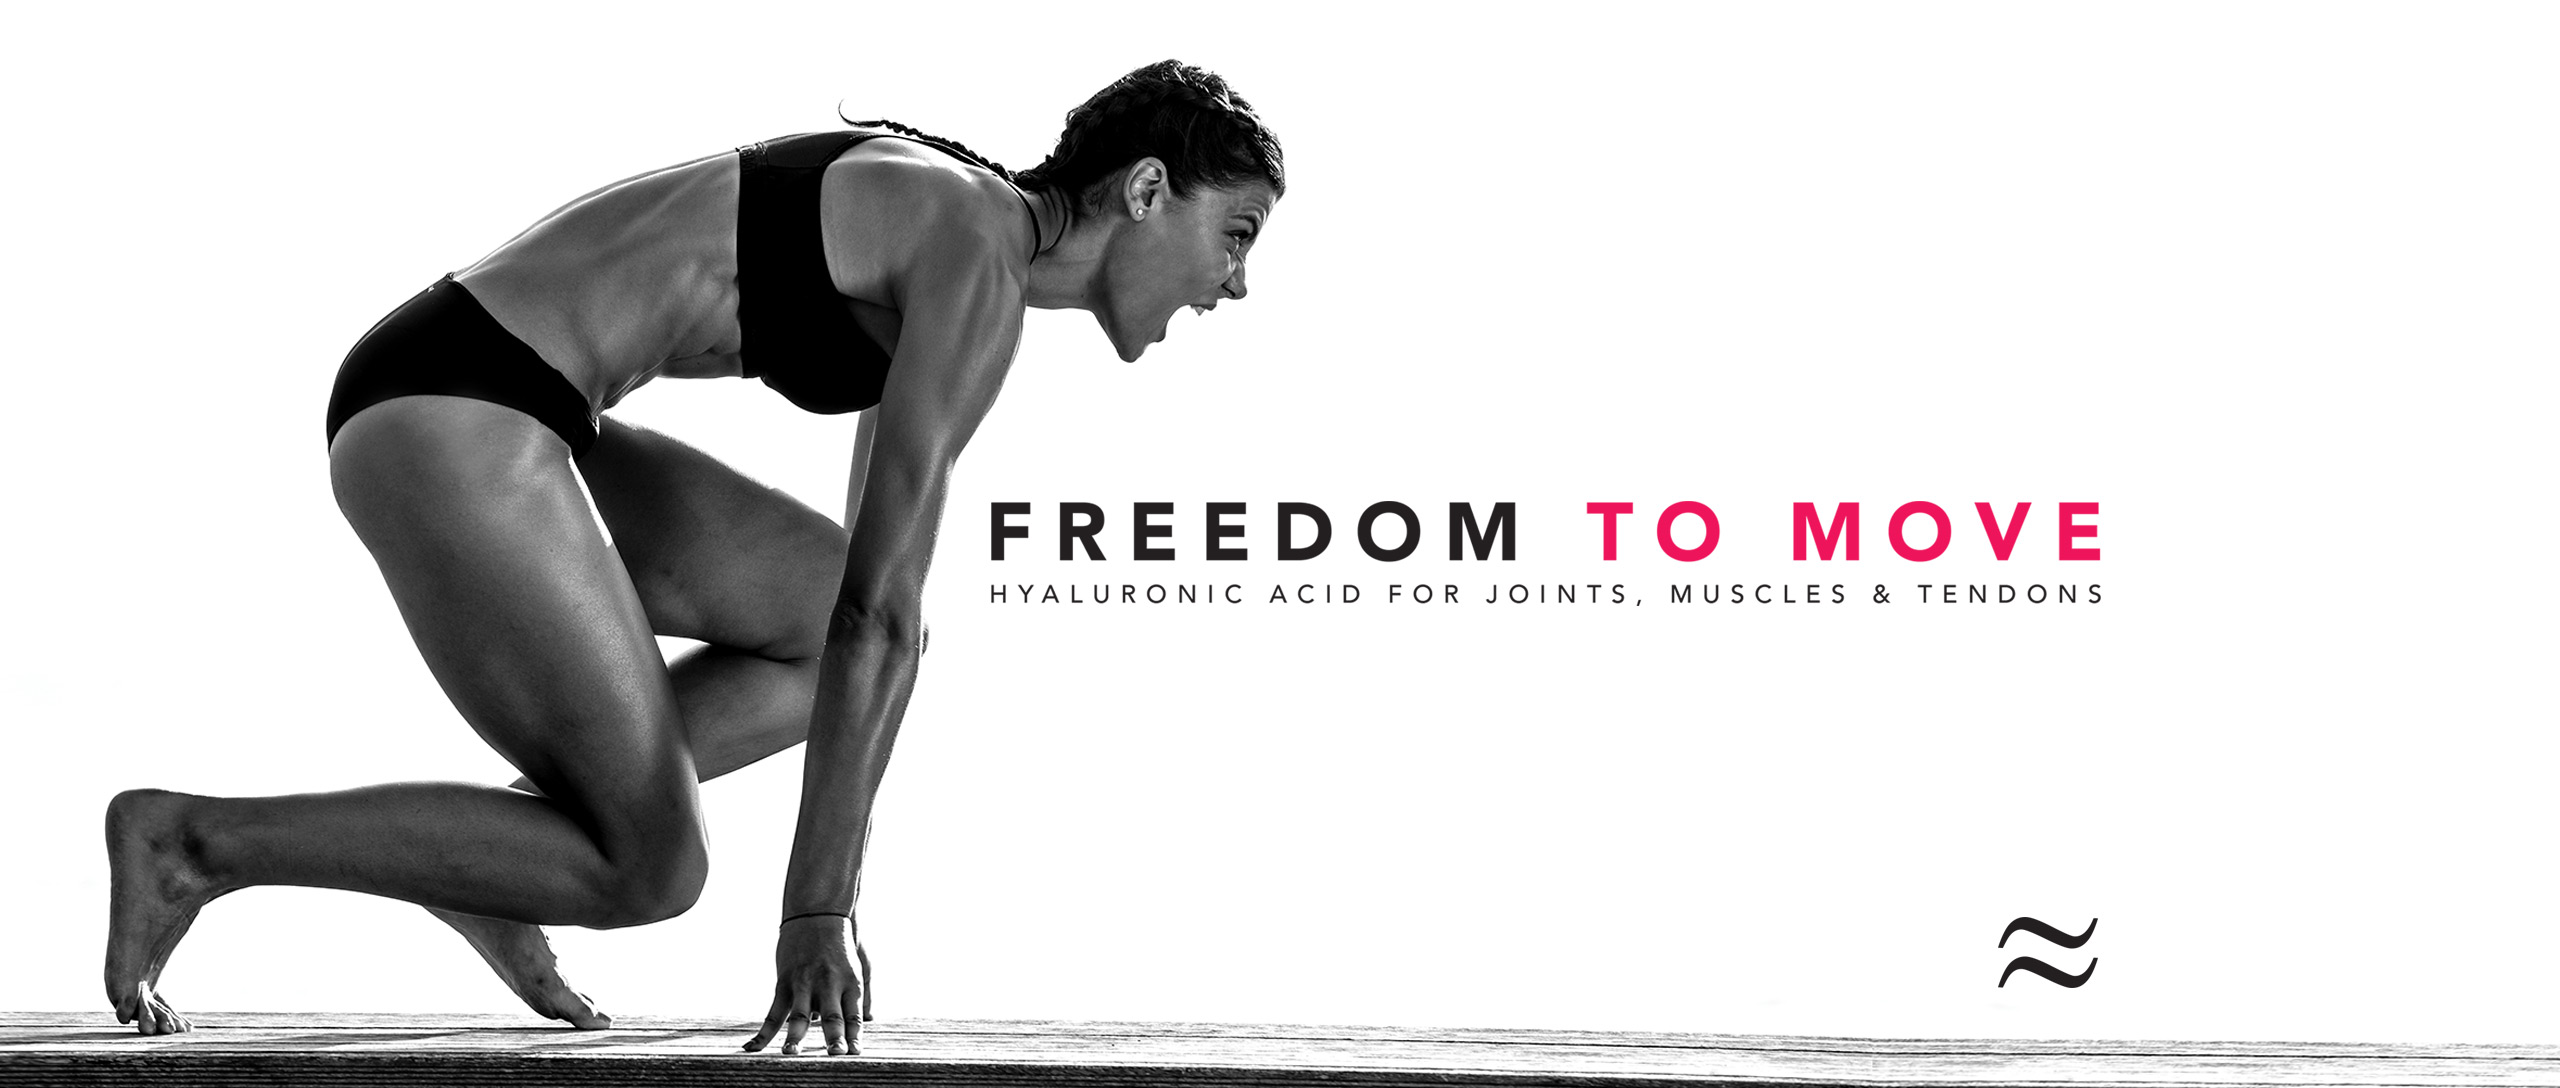 freedom to move. Hyaluronic Acid for joints, muscles and tendons.